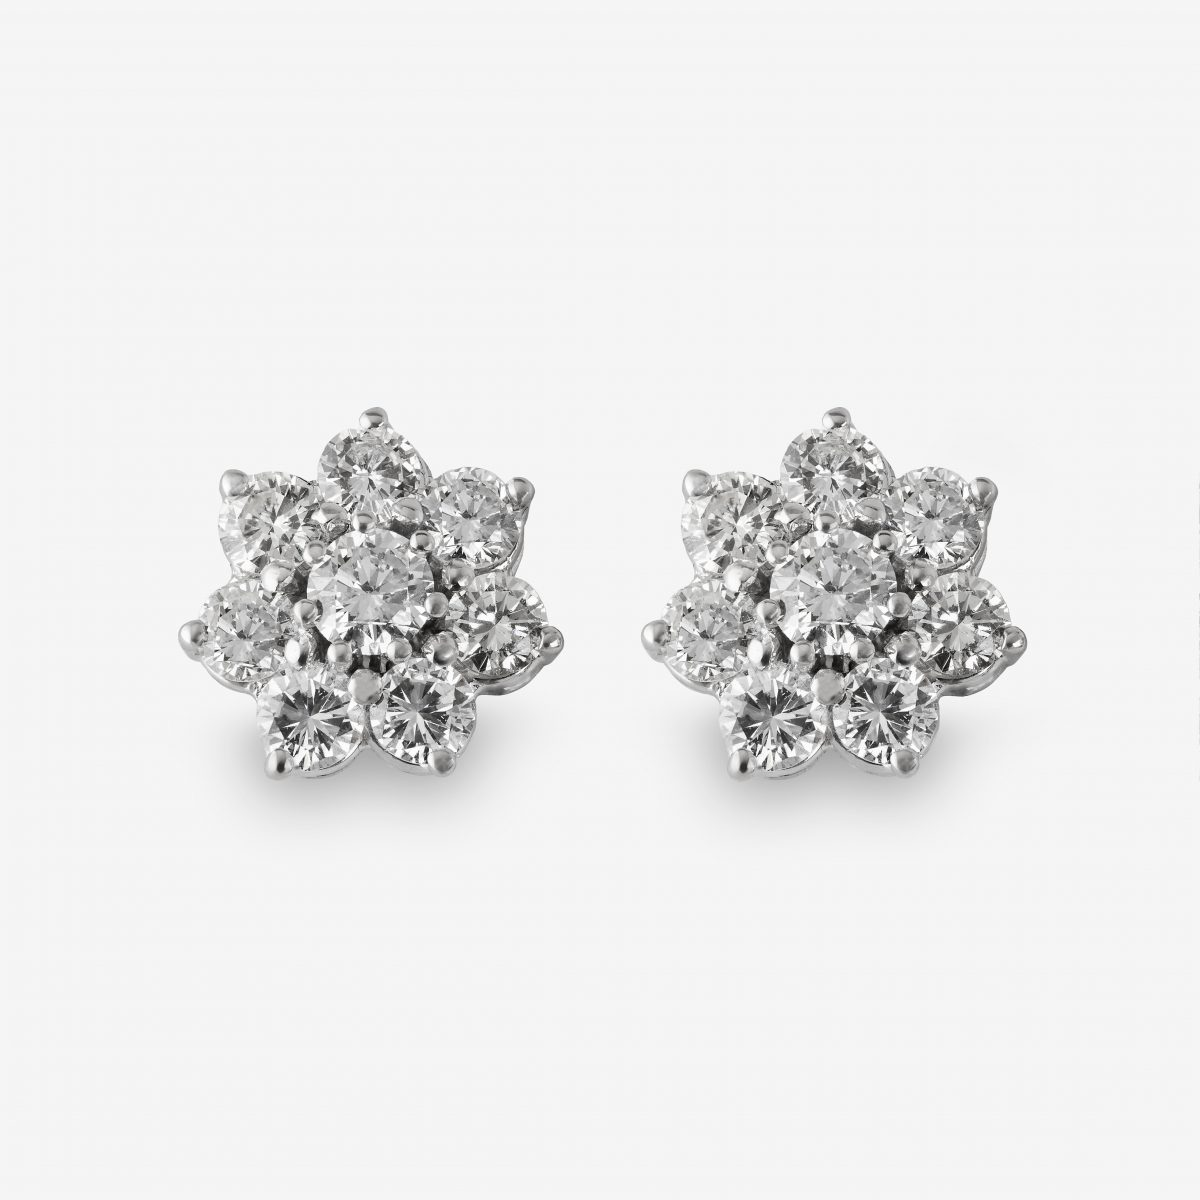 Pendientes oro blanco y brillantes 2,62 quilates.